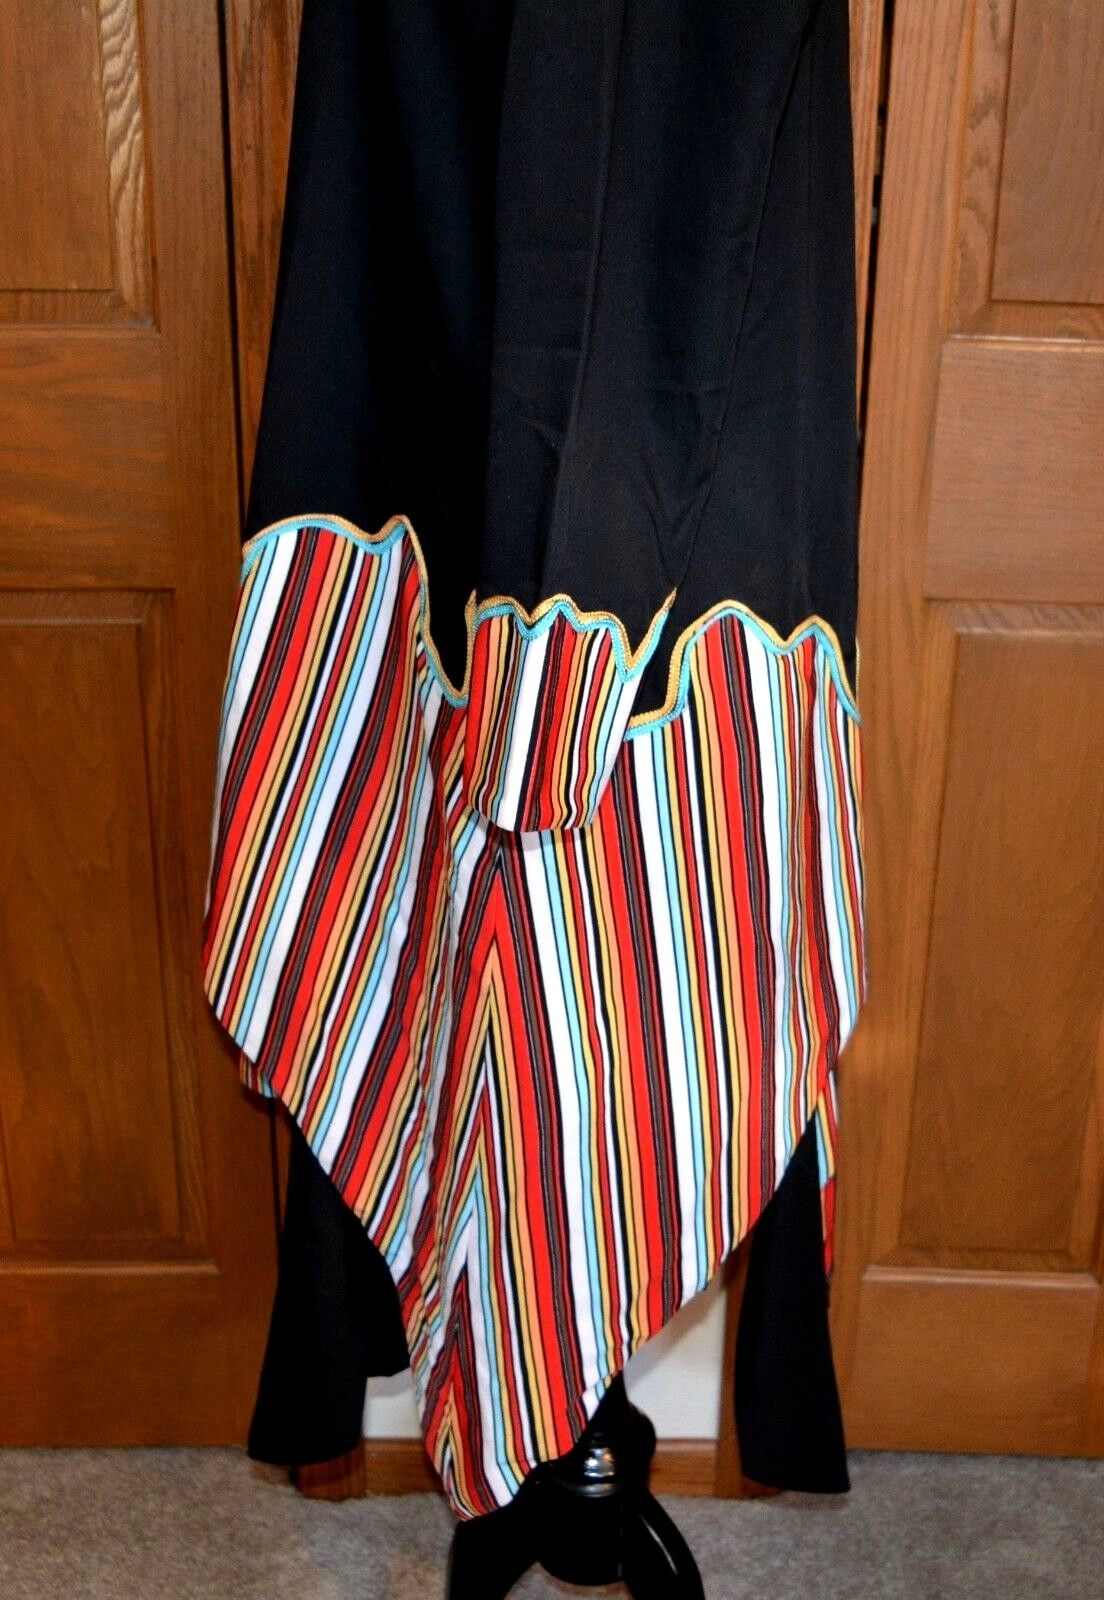 African Ceremonial Dress Hand Made Hand Tailored … - image 6